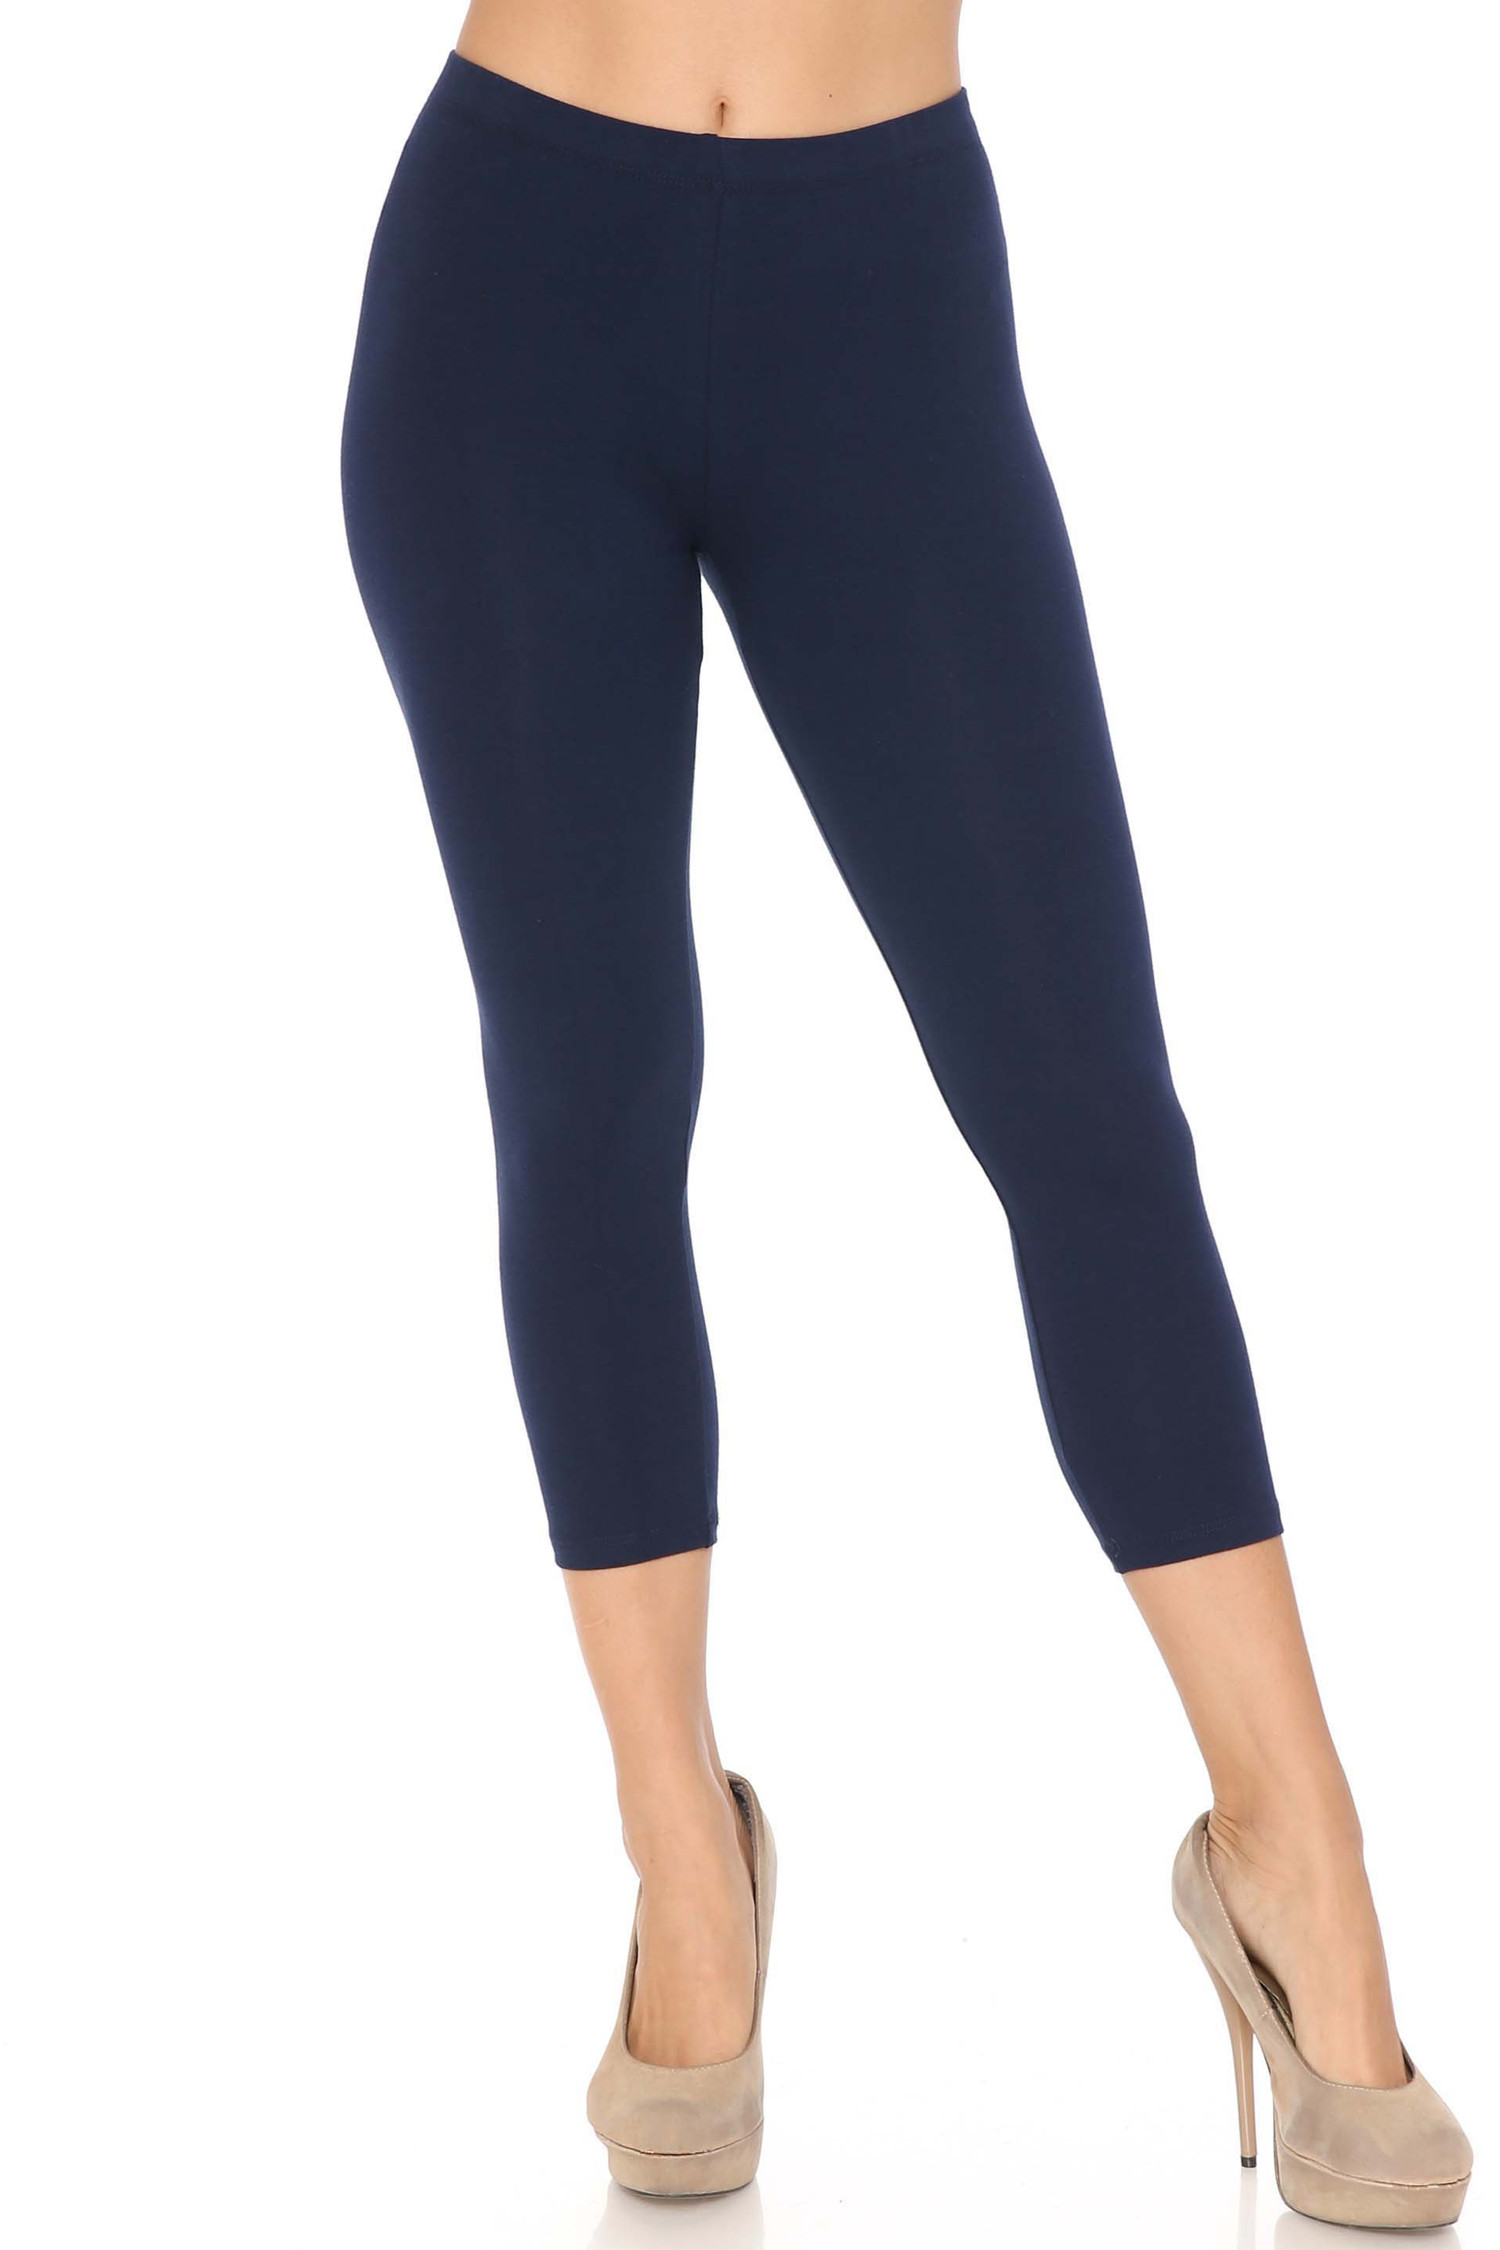 Front view of navy USA Cotton Capri Length Leggings